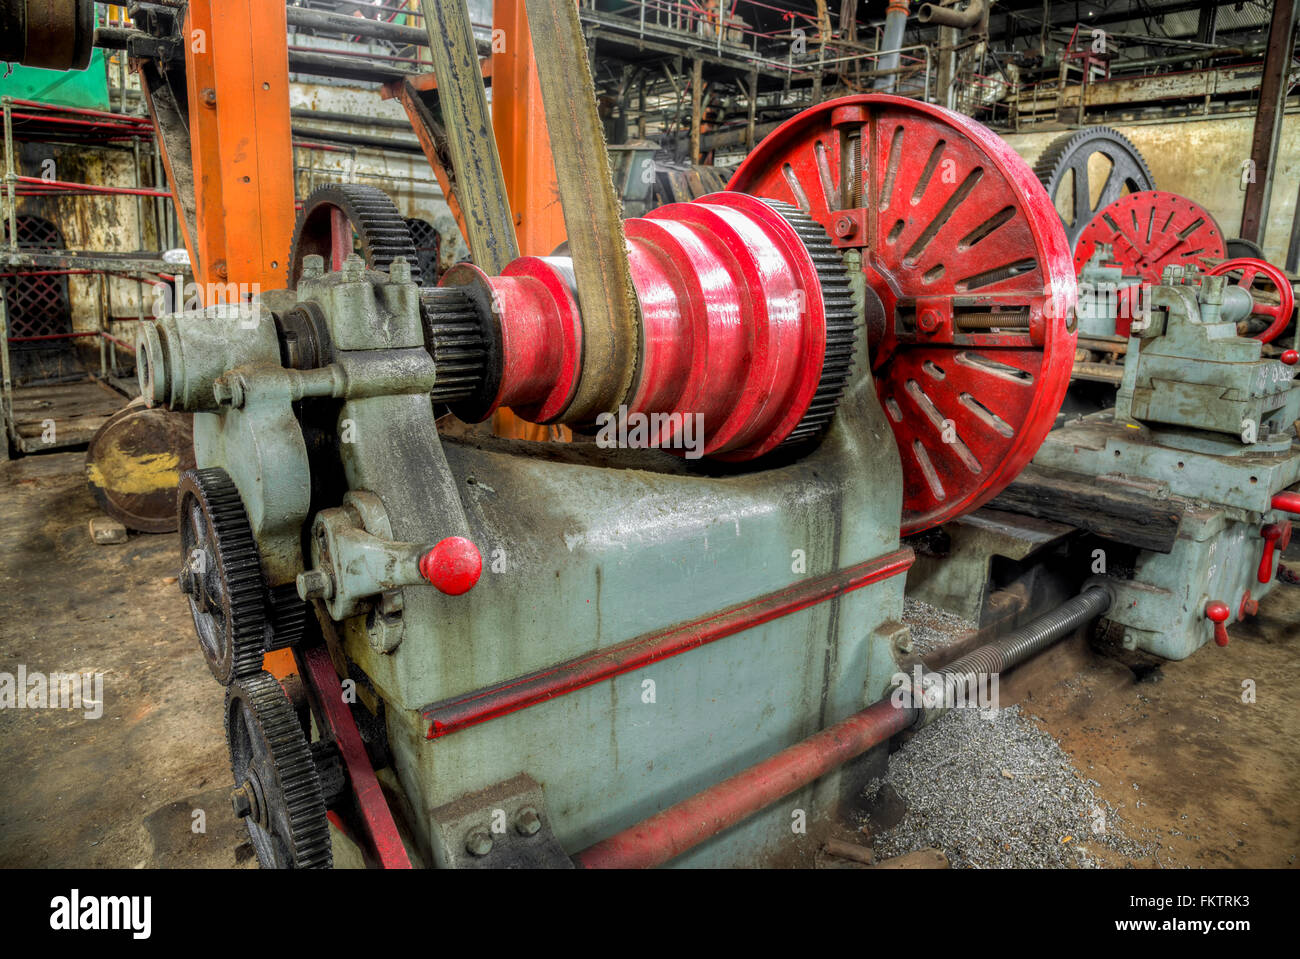 Old lathe driven by belt transmission with different  gearing shaft in Gondang Baru sugar factory, Indonesia - Stock Image